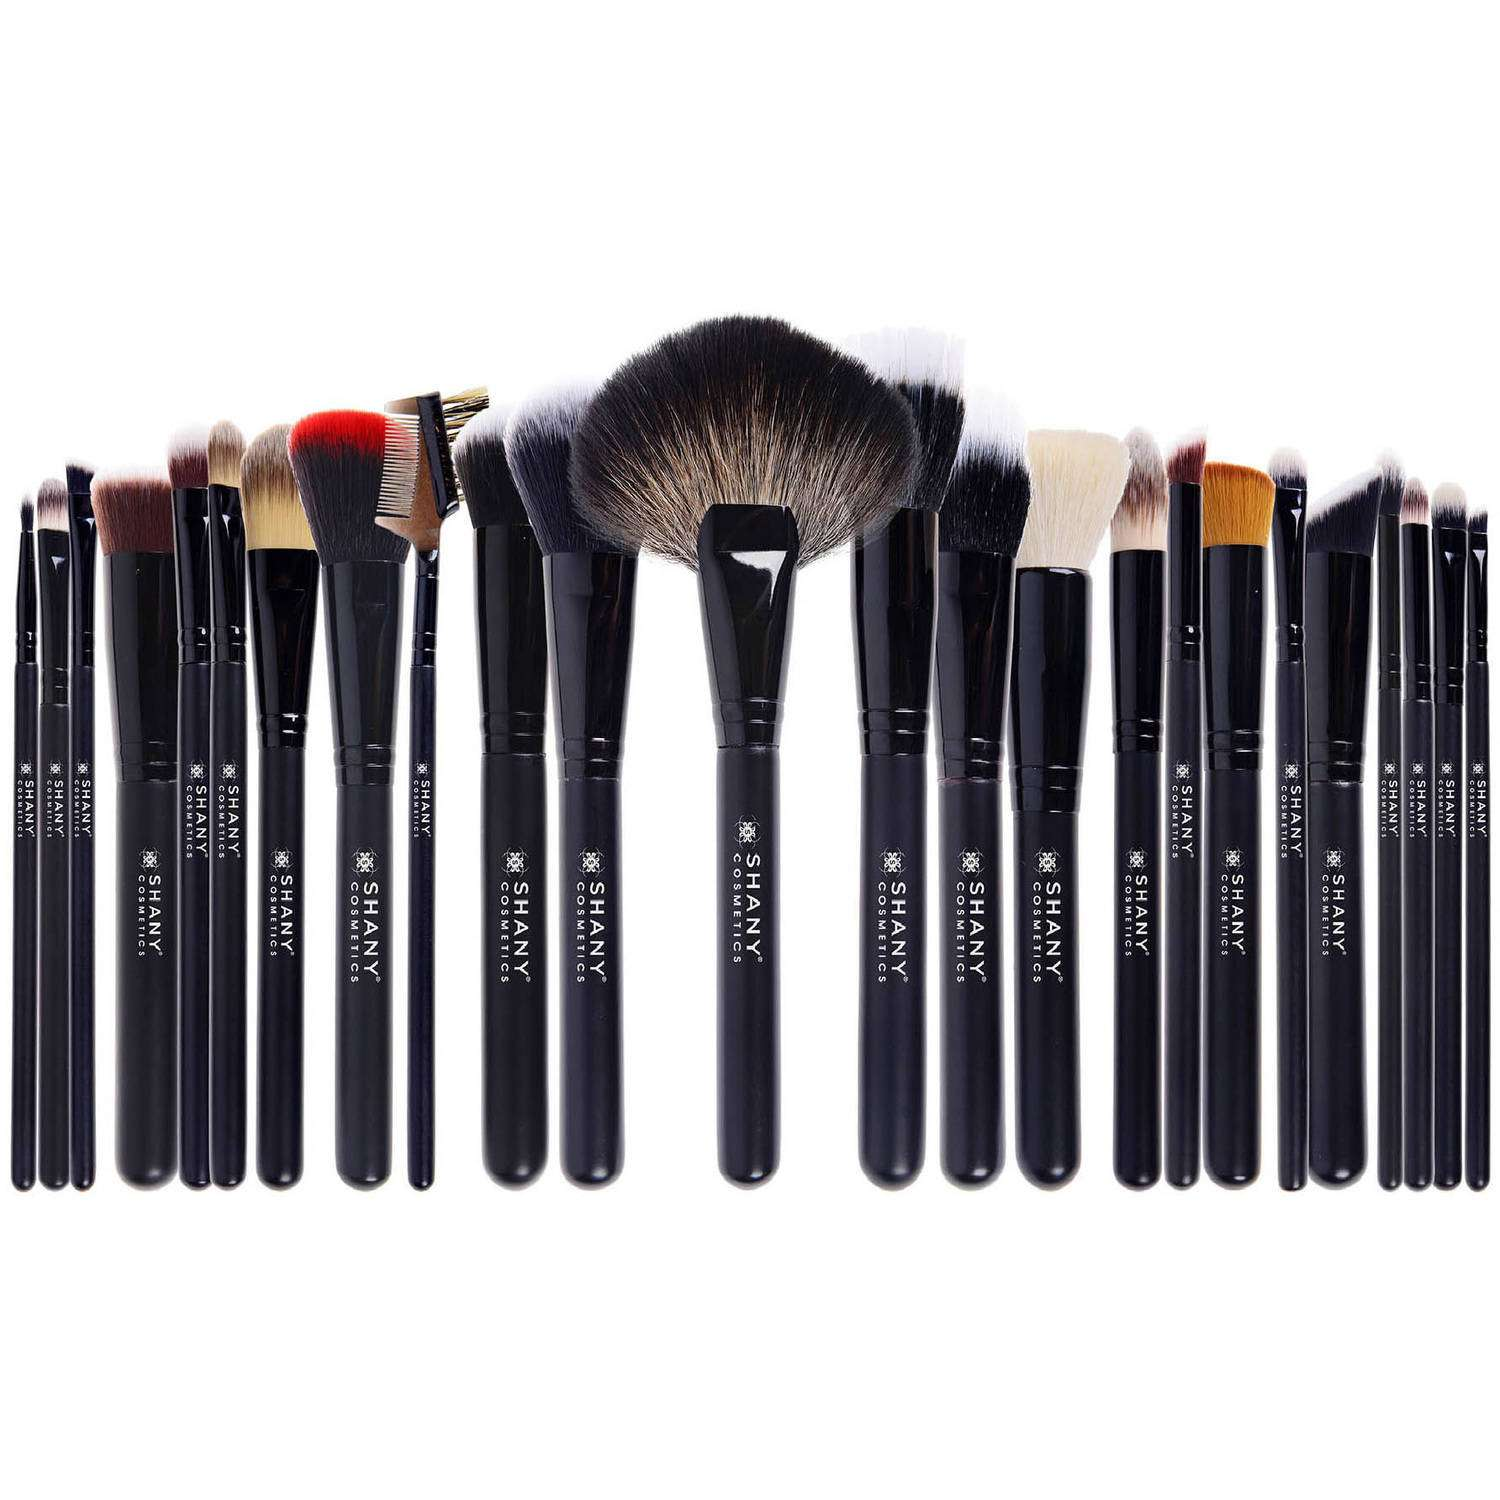 The 12 Best Makeup Brushes Of 2021